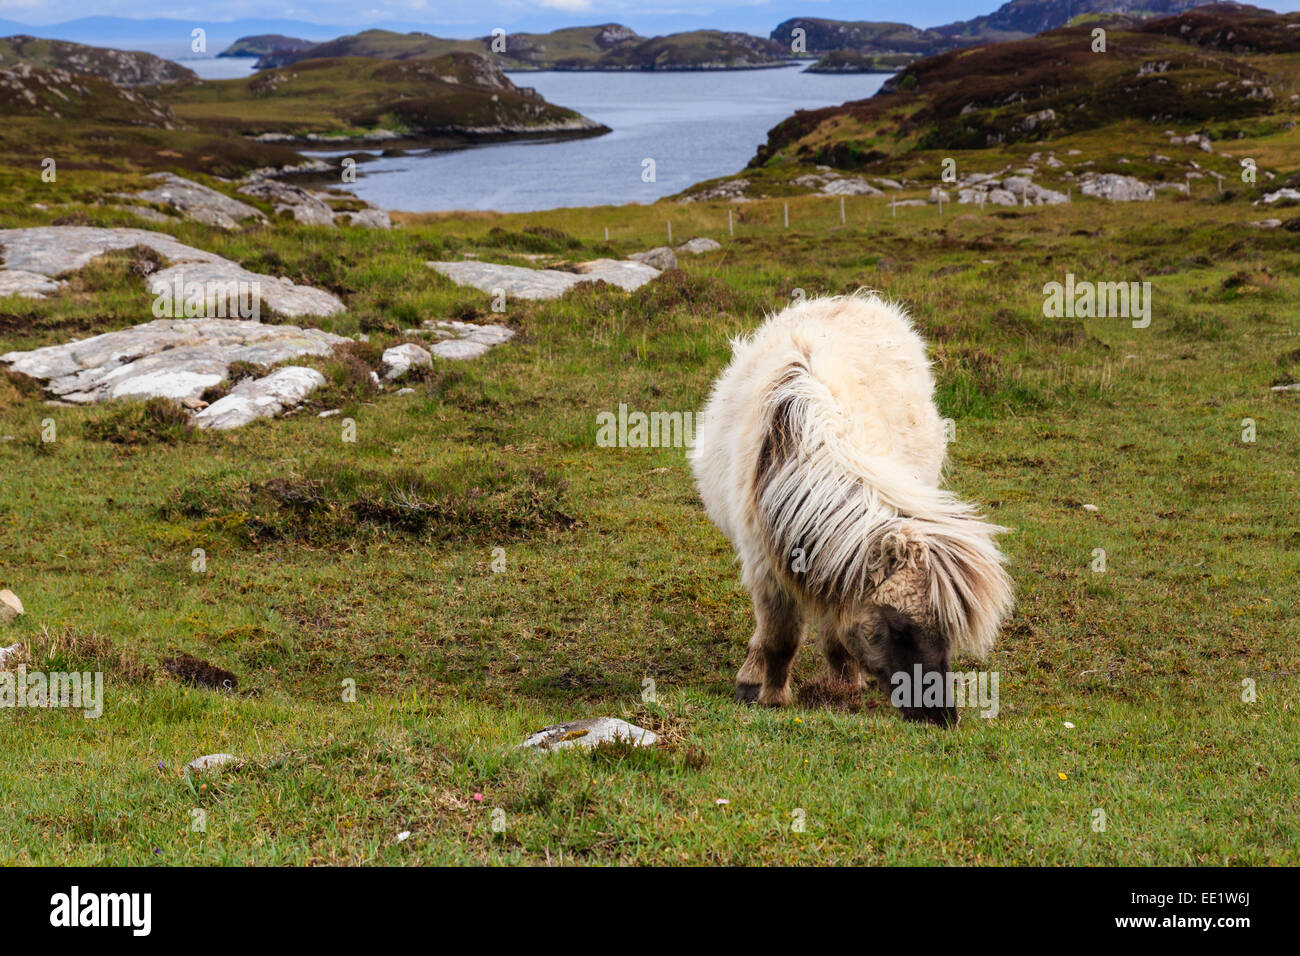 Wild pony grazing on rough moorland grass by Loch Sgioport, South Uist, Outer Hebrides, Western Isles, Scotland, - Stock Image